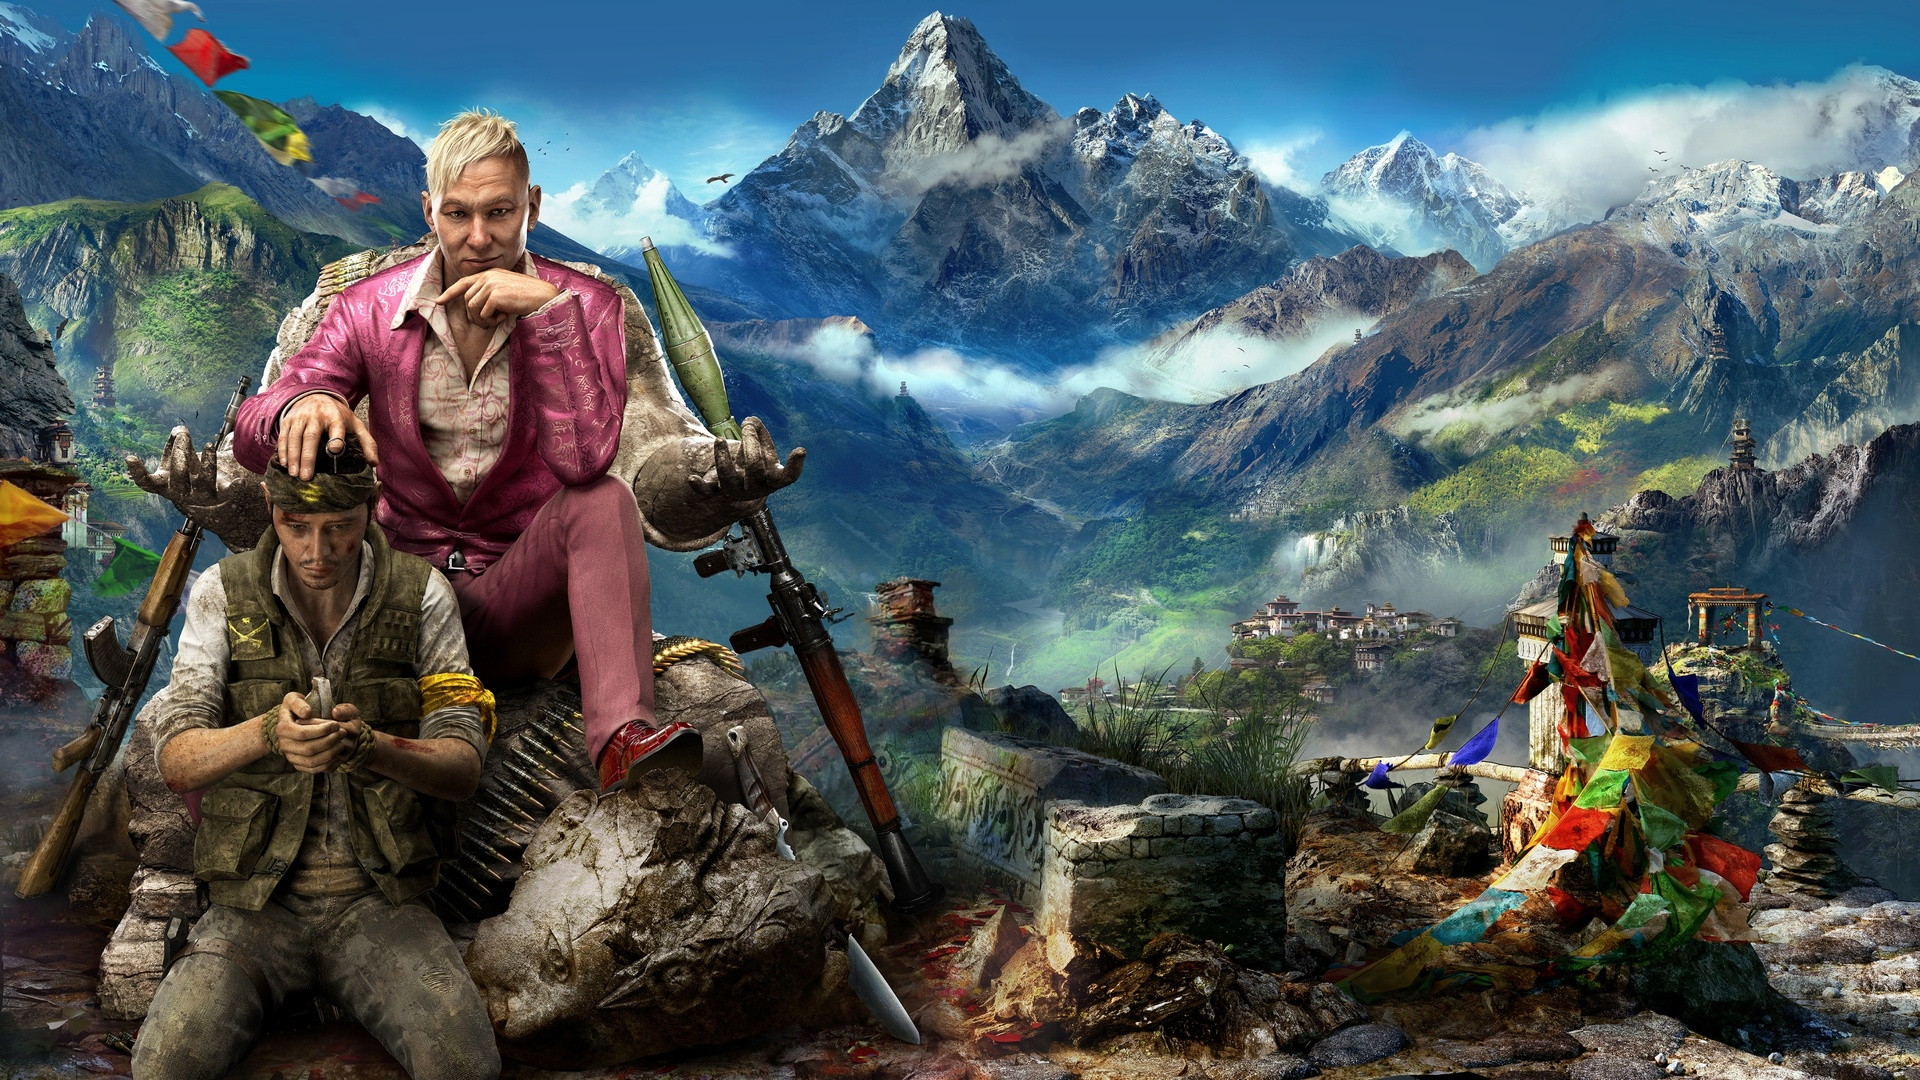 By Etsuko Wertman - Far Cry 4 Wallpapers, 1920x1080 px